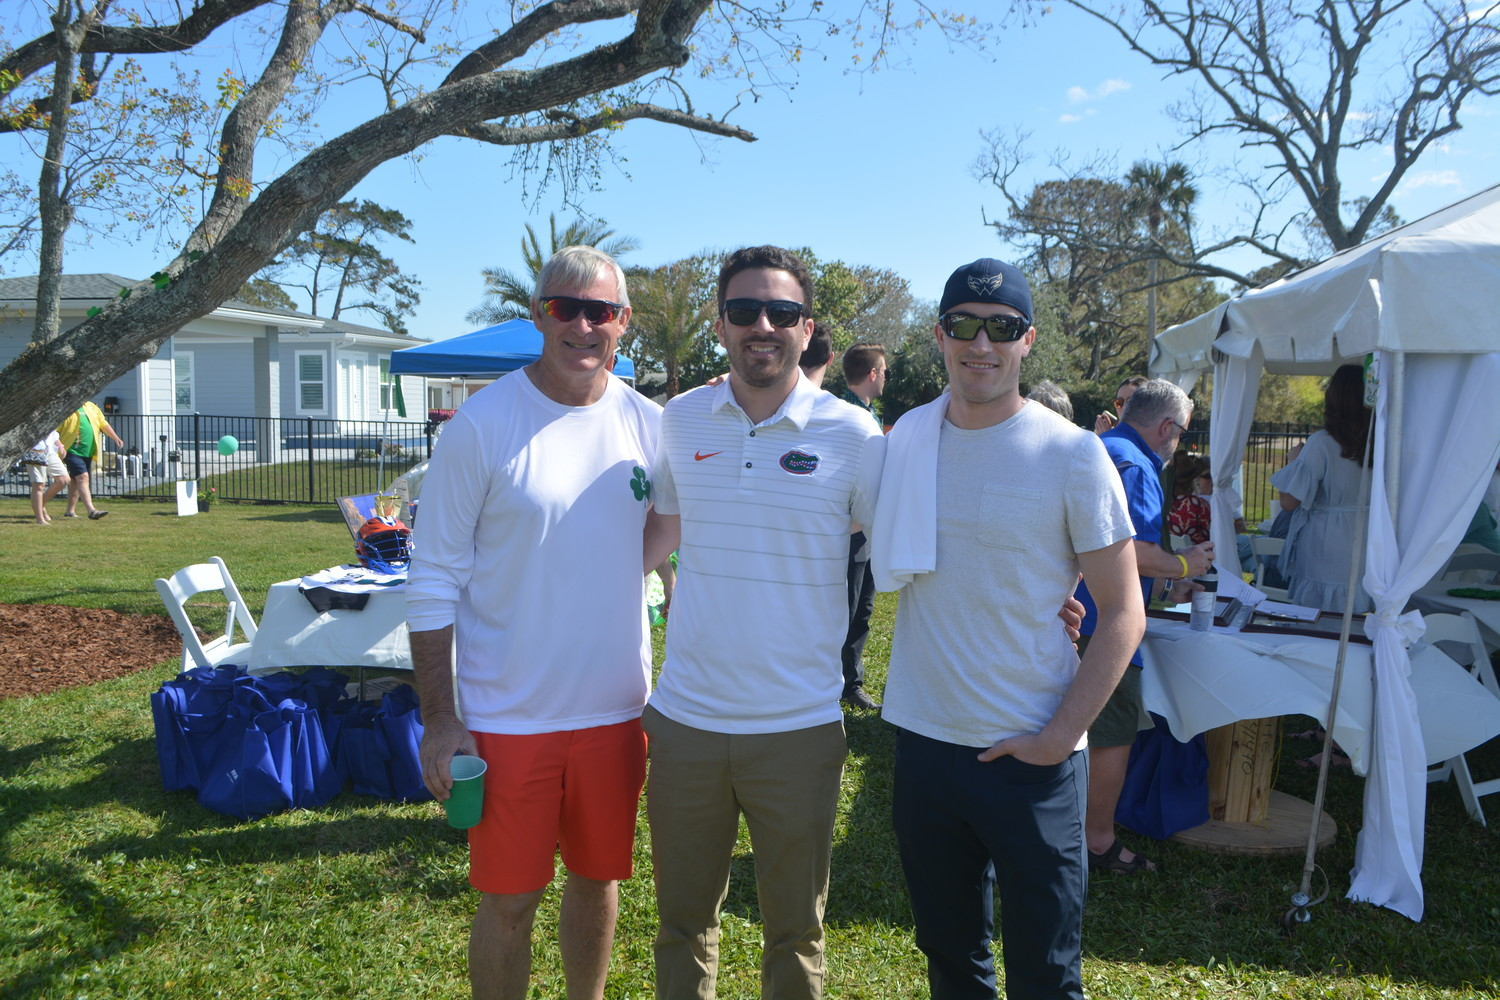 Sean Hanrahan, Dylan Rodriguez and Keinan Hanrahan gather at the Classic.